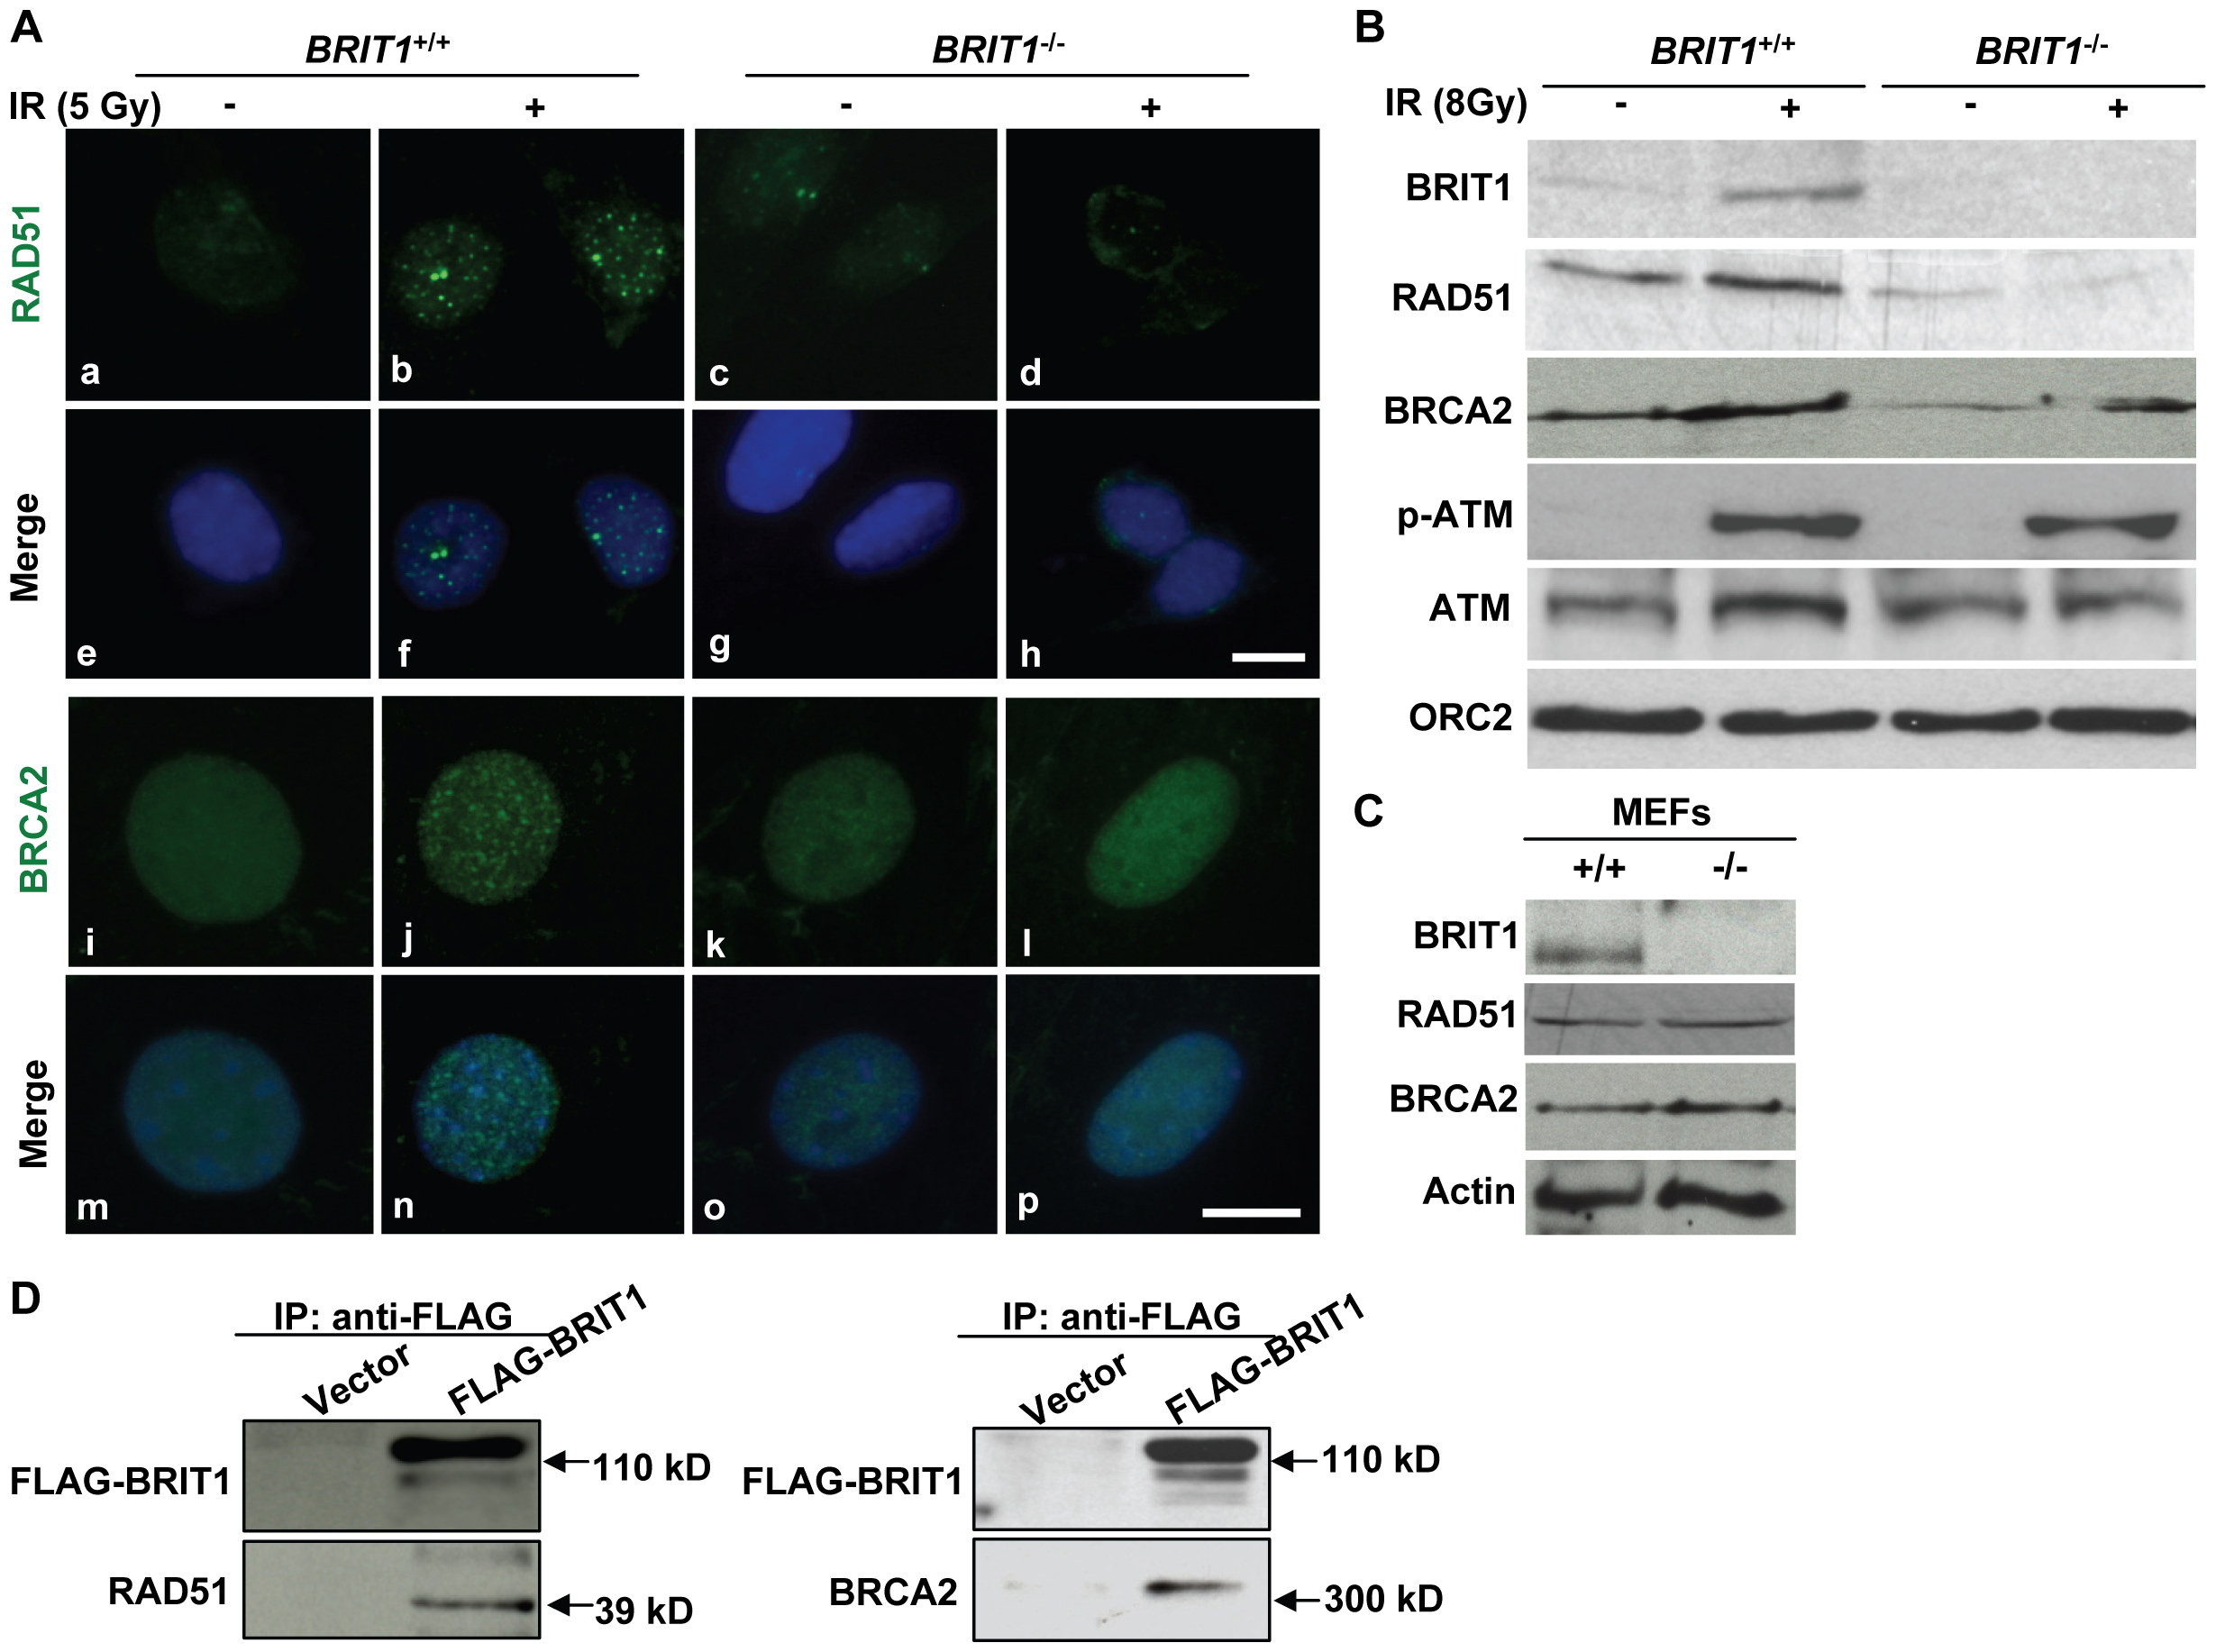 BRIT1 is required for recruitment of RAD51/BRCA2 to the IR-induced DNA damage sites.